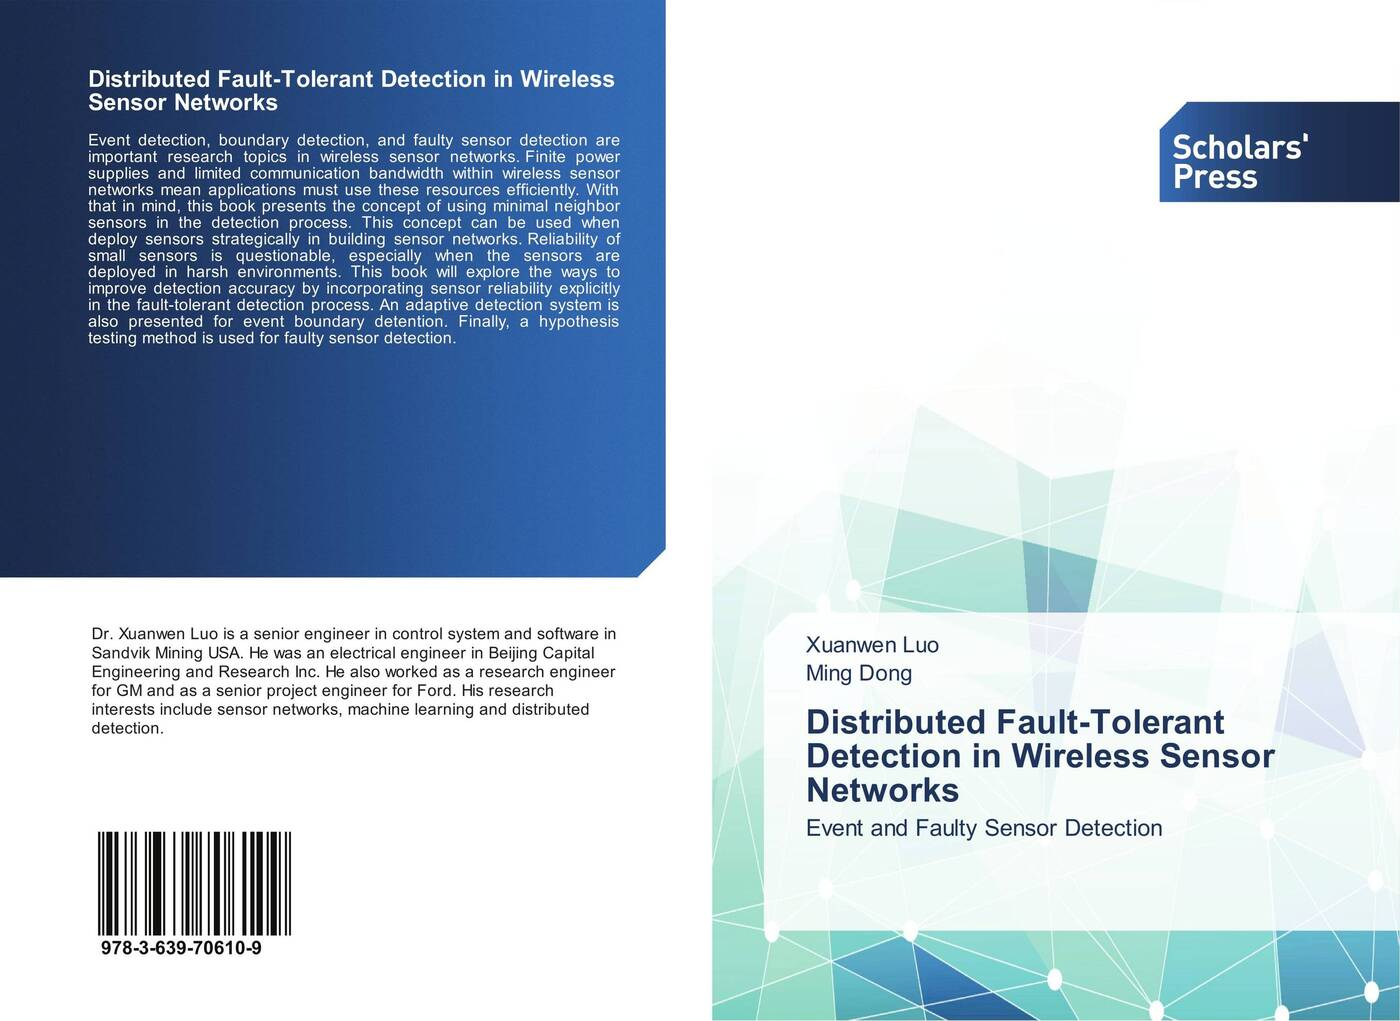 Xuanwen Luo and Ming Dong Distributed Fault-Tolerant Detection in Wireless Sensor Networks emrah asan video shot boundary detection by graph theoretic approaches